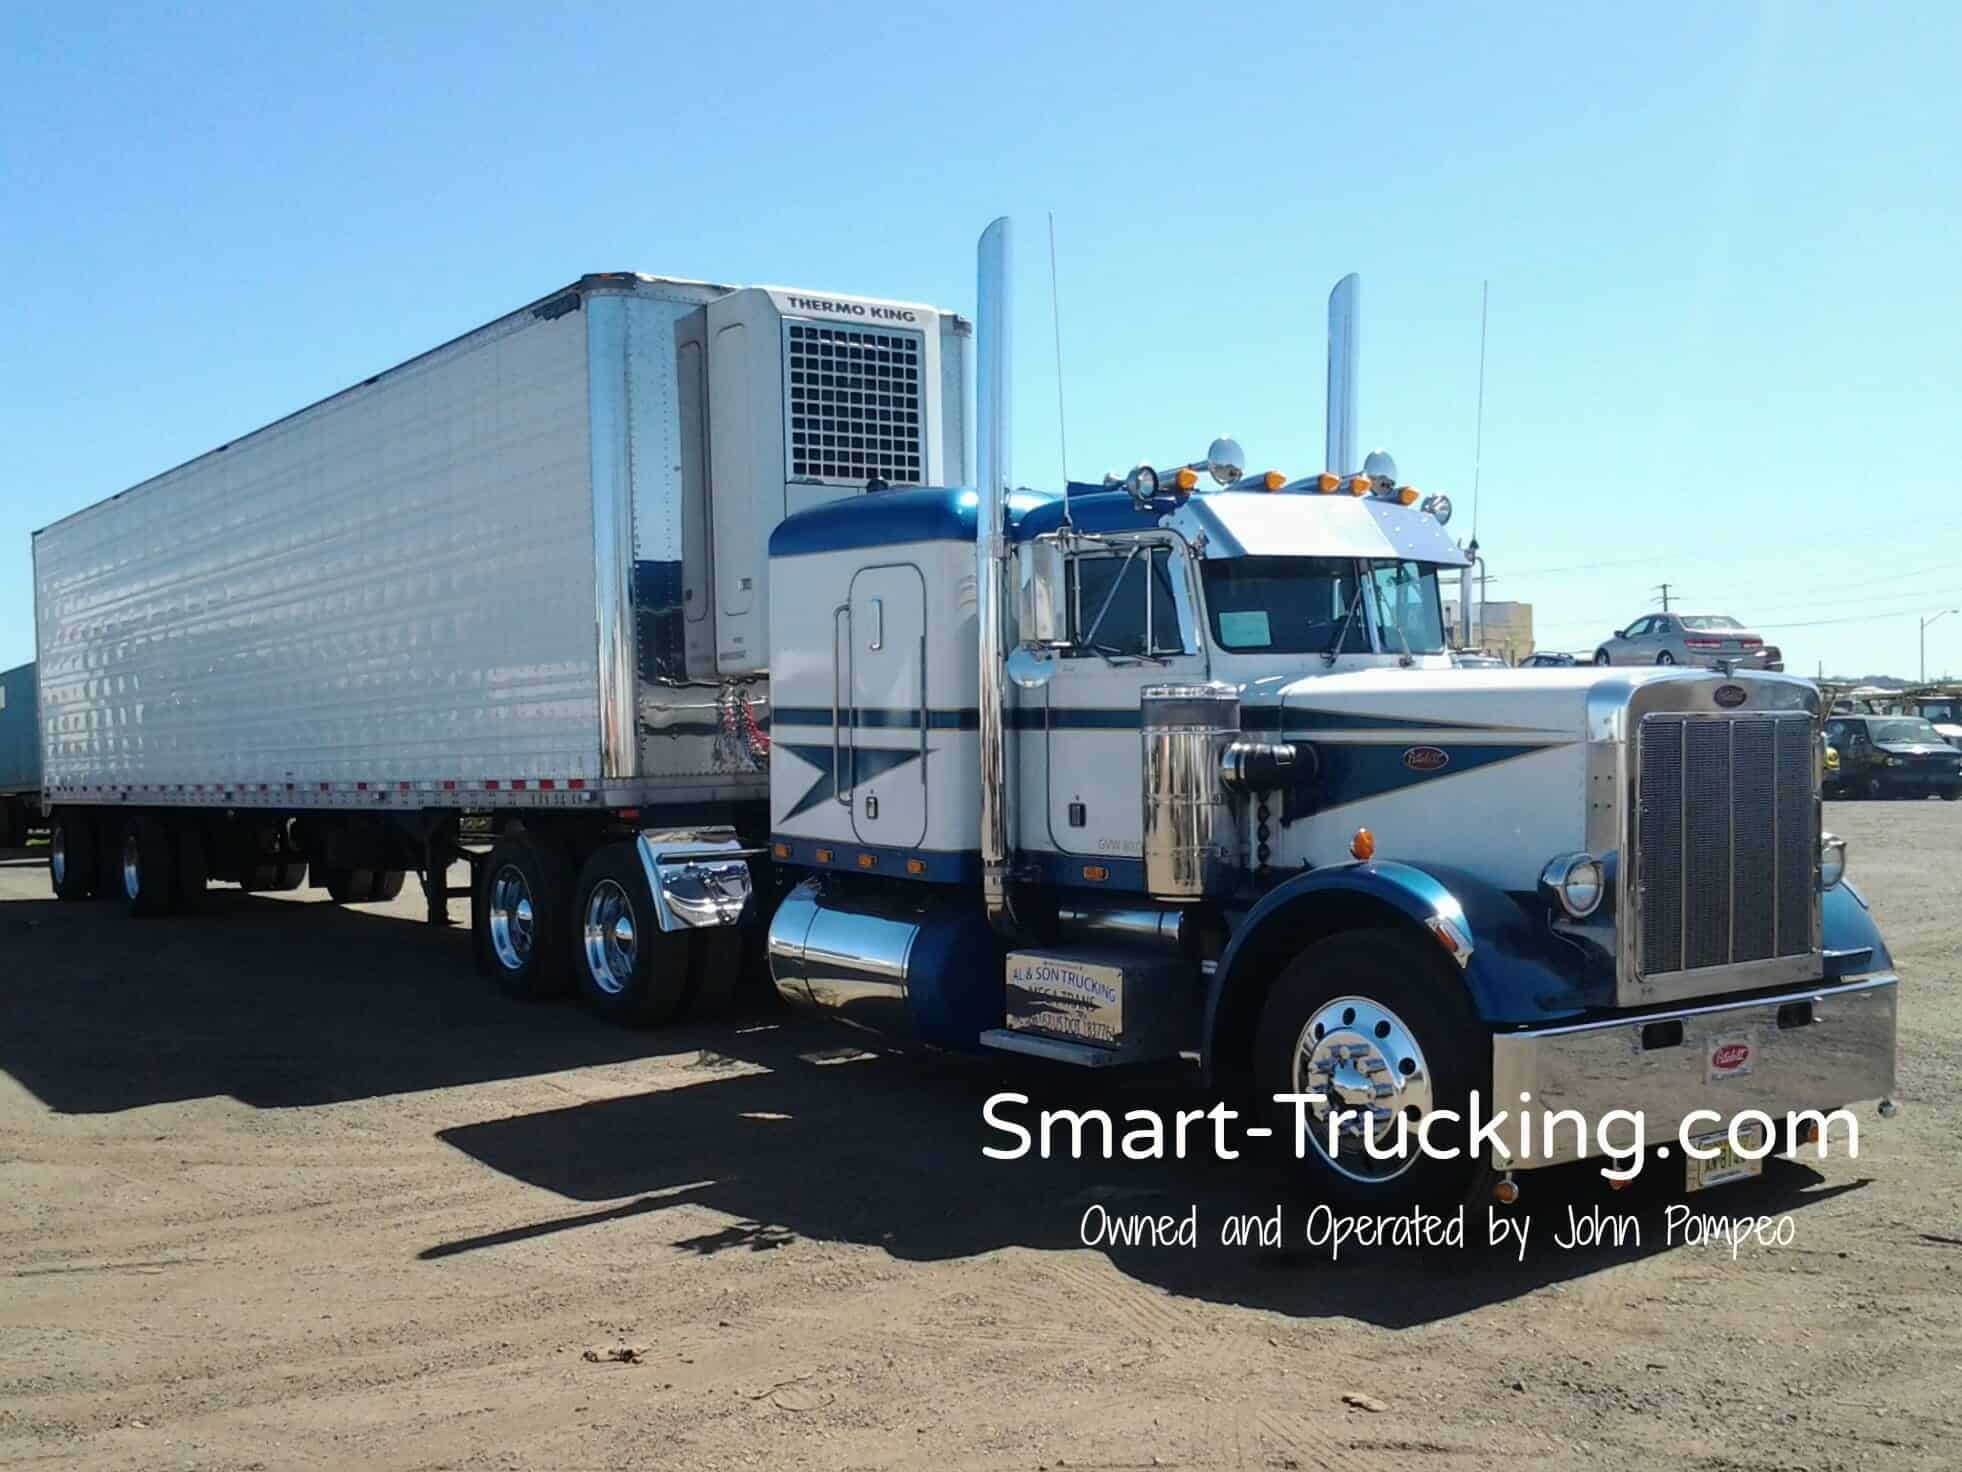 Classic Peterbilt 359 Numbered Trucks The End Of An Era